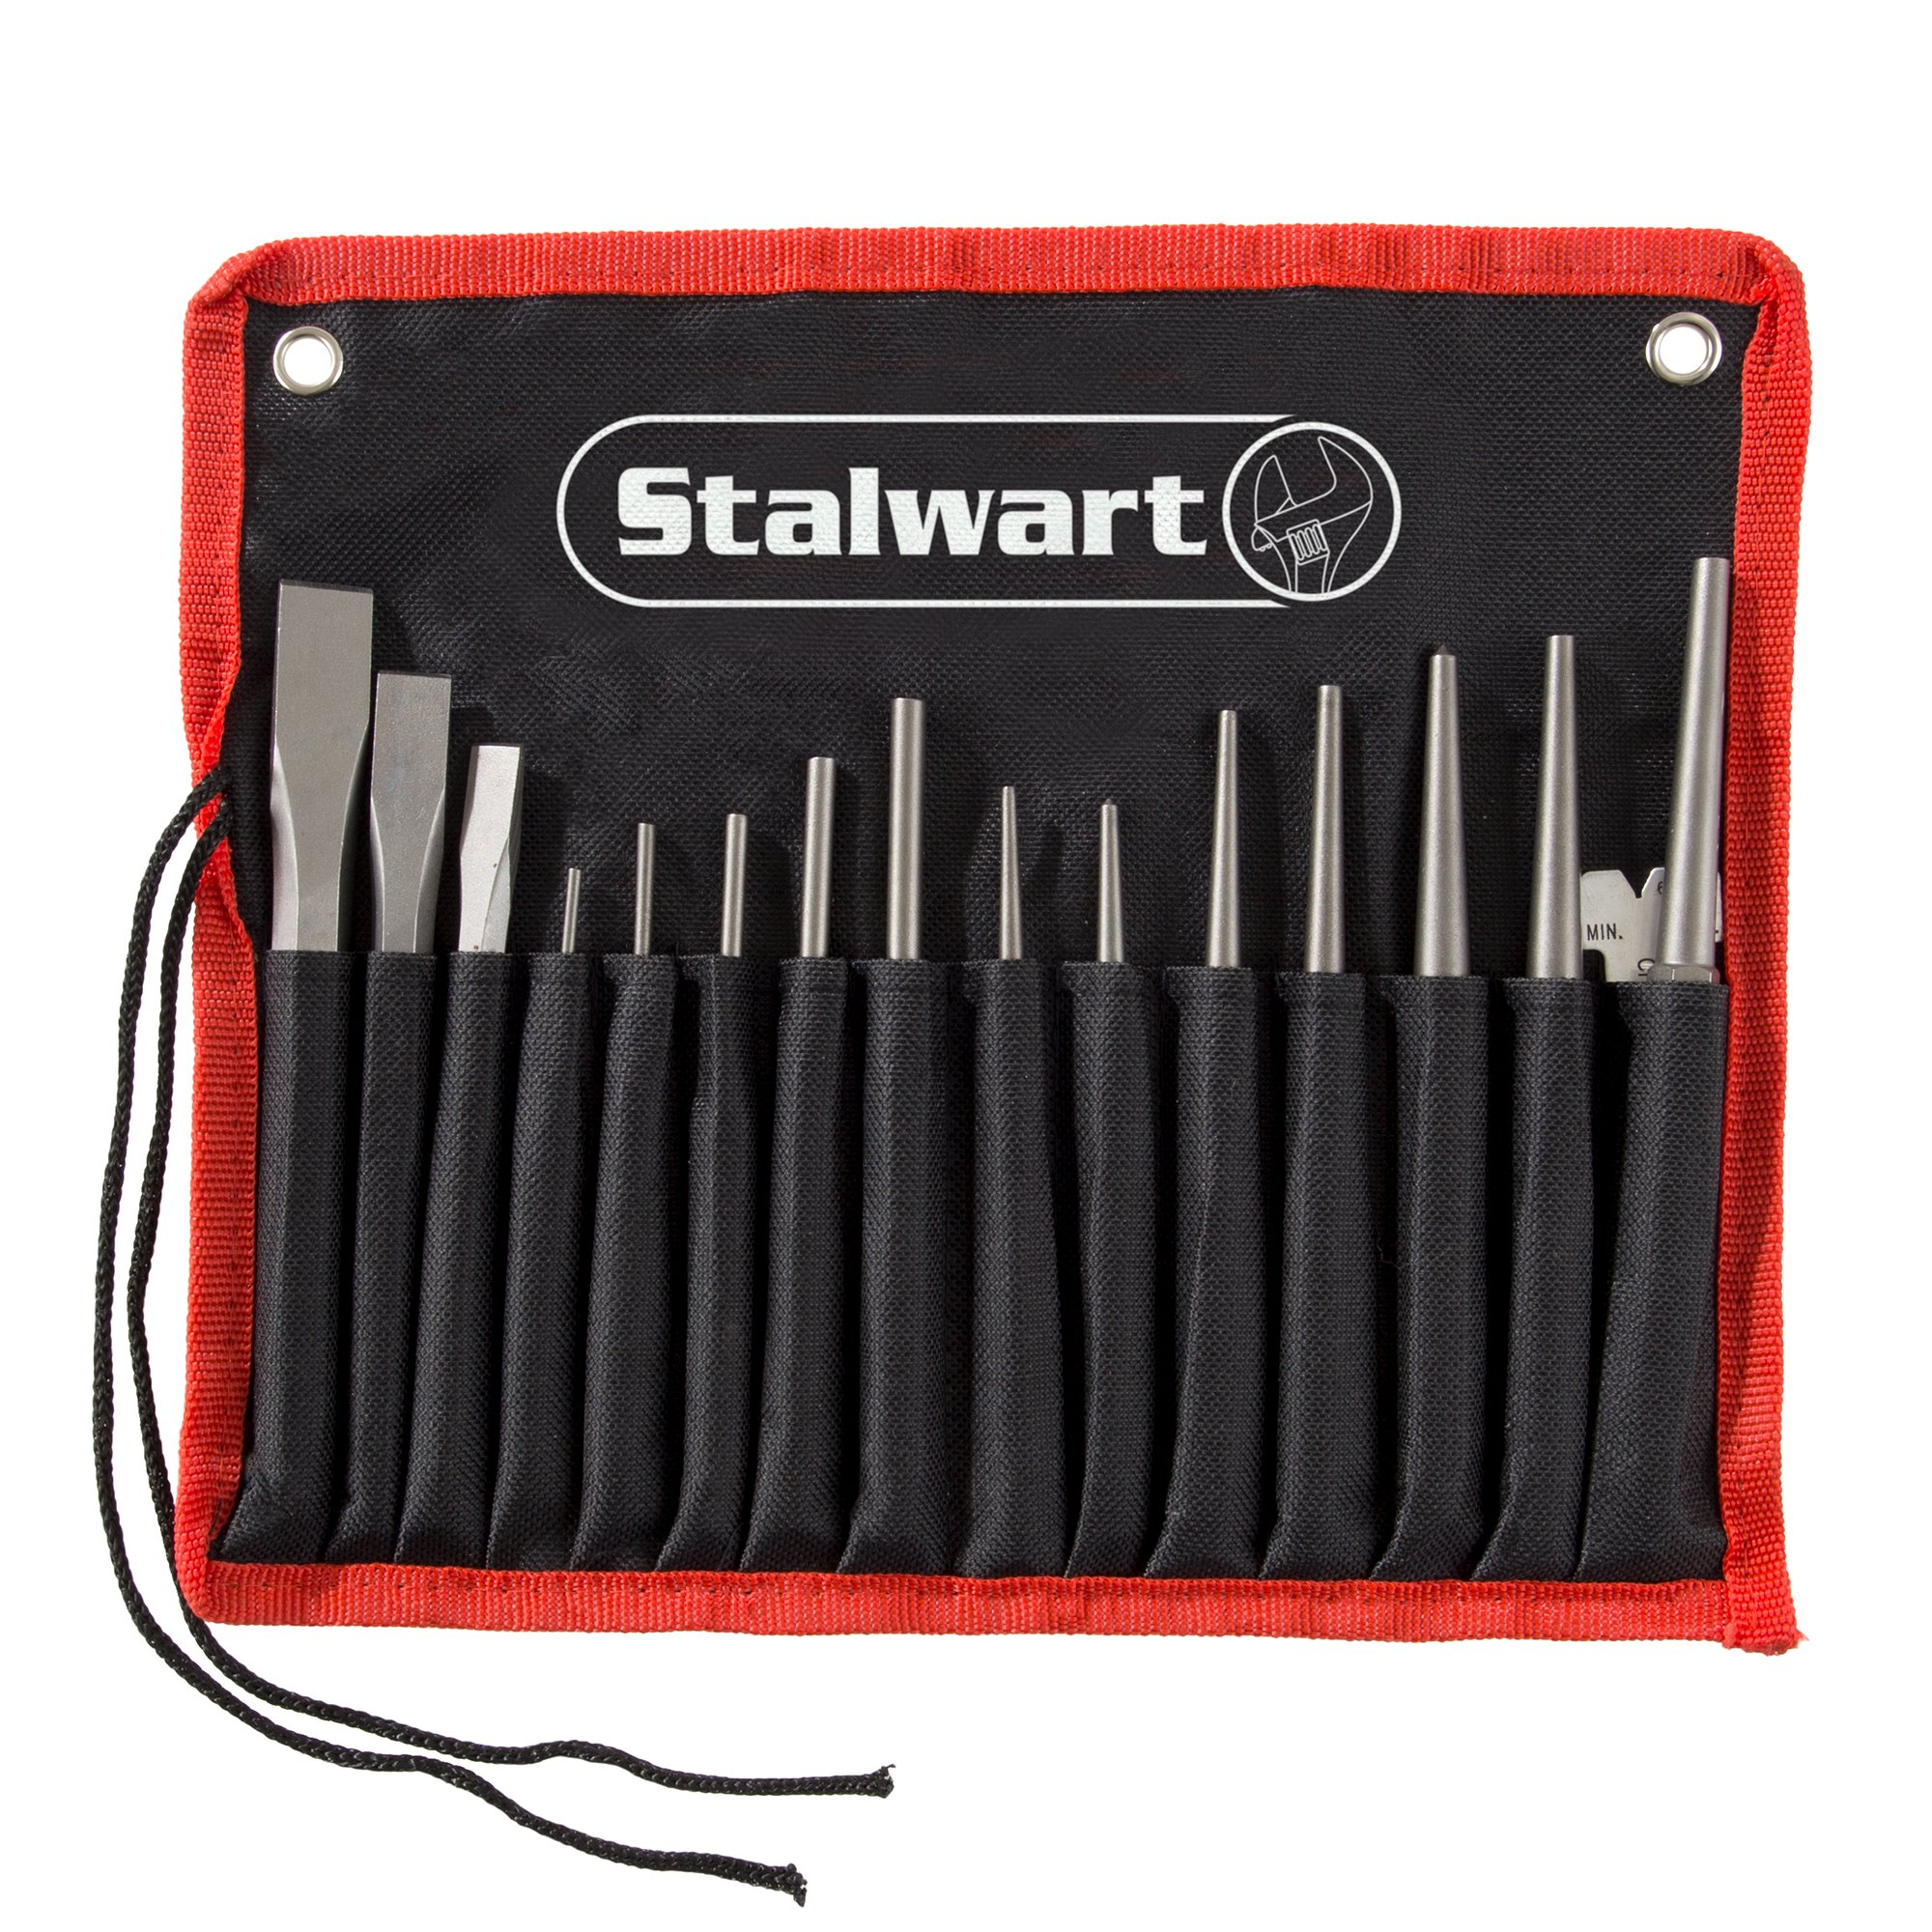 Punch And Chisel Set, 16 Pieces- Includes Taper Punches, Cold Chisels, Pin Punches, Center Punches, Chisel Gauge, and Storage Case- By Stalwart by Stalwart